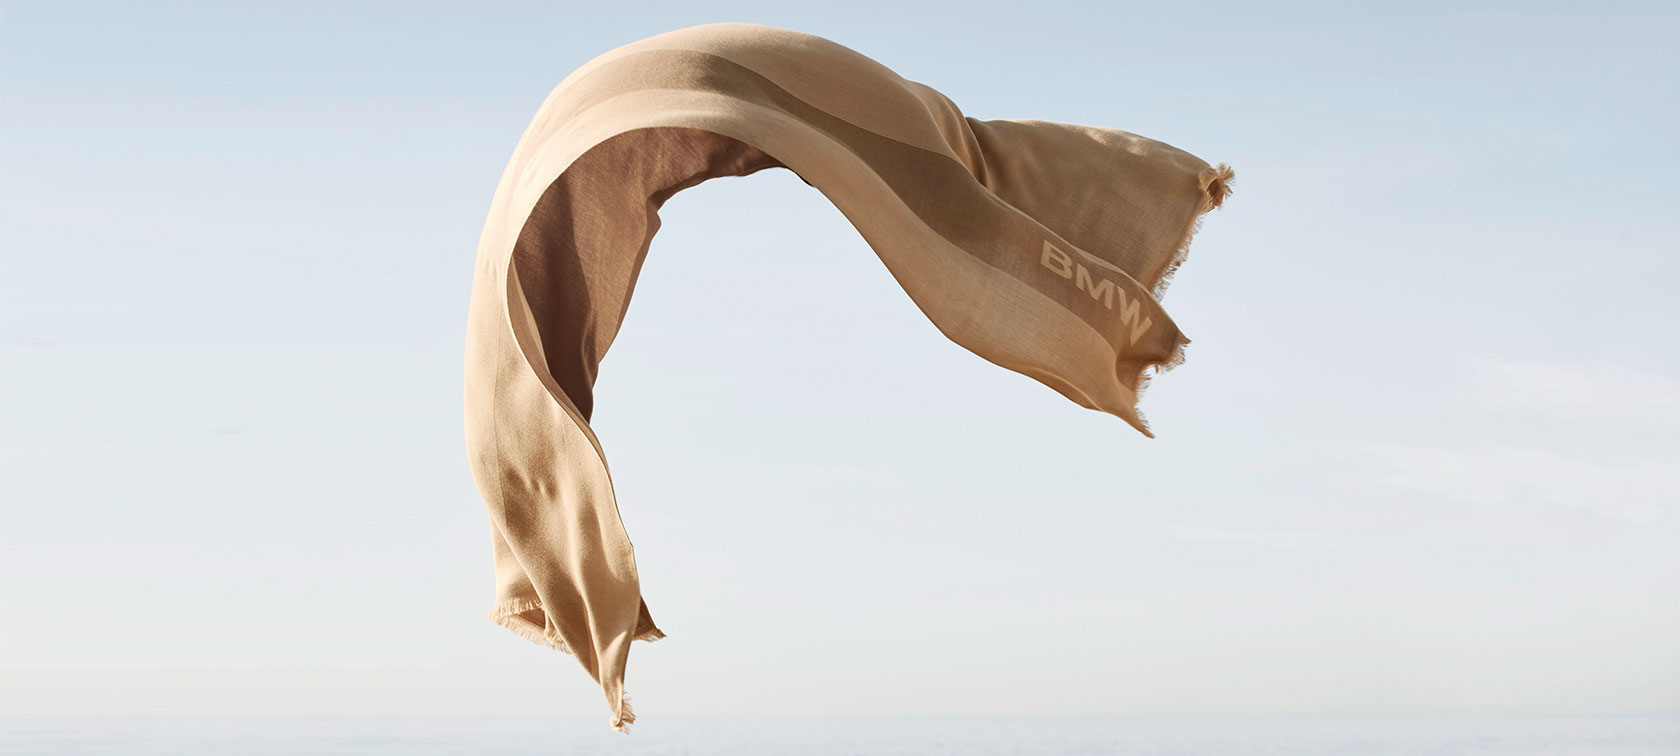 The BMW Summer Scarf is fluttering in the wind.